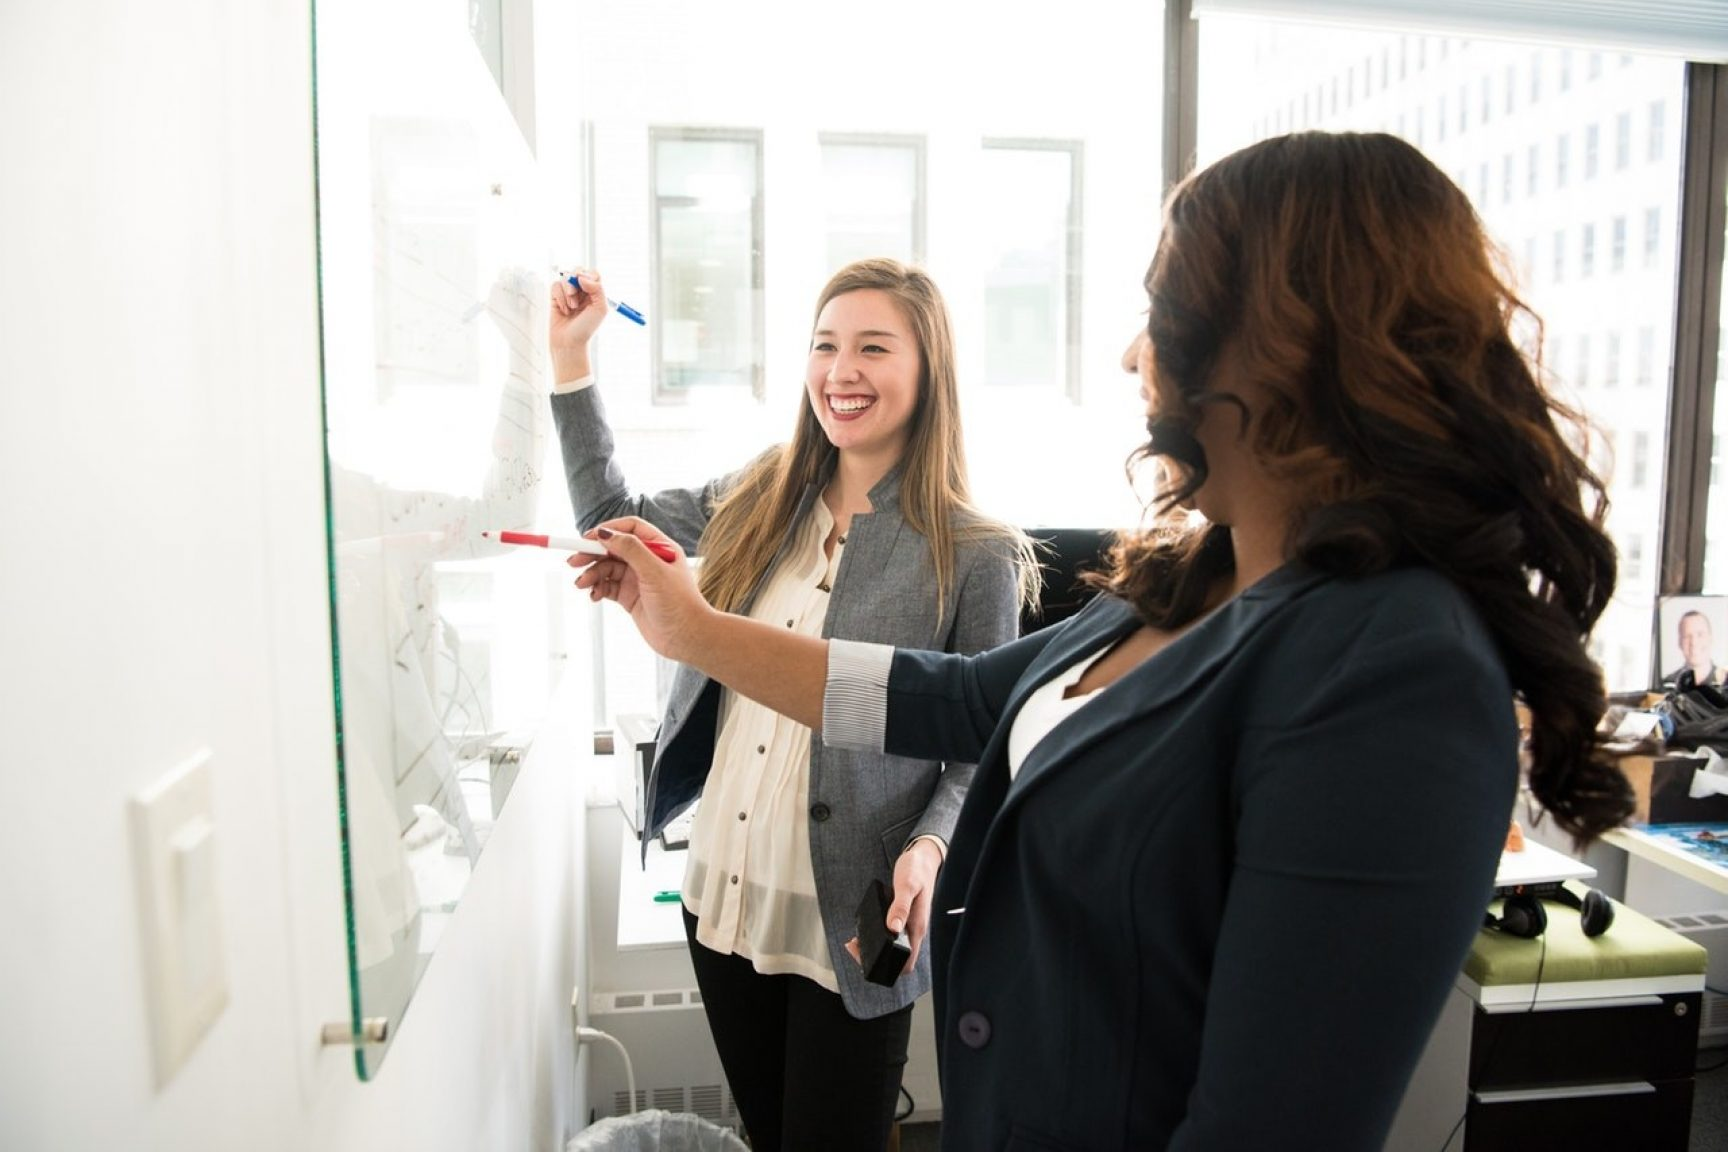 Two women at work. They are working together at a whiteboard. They are smiling.